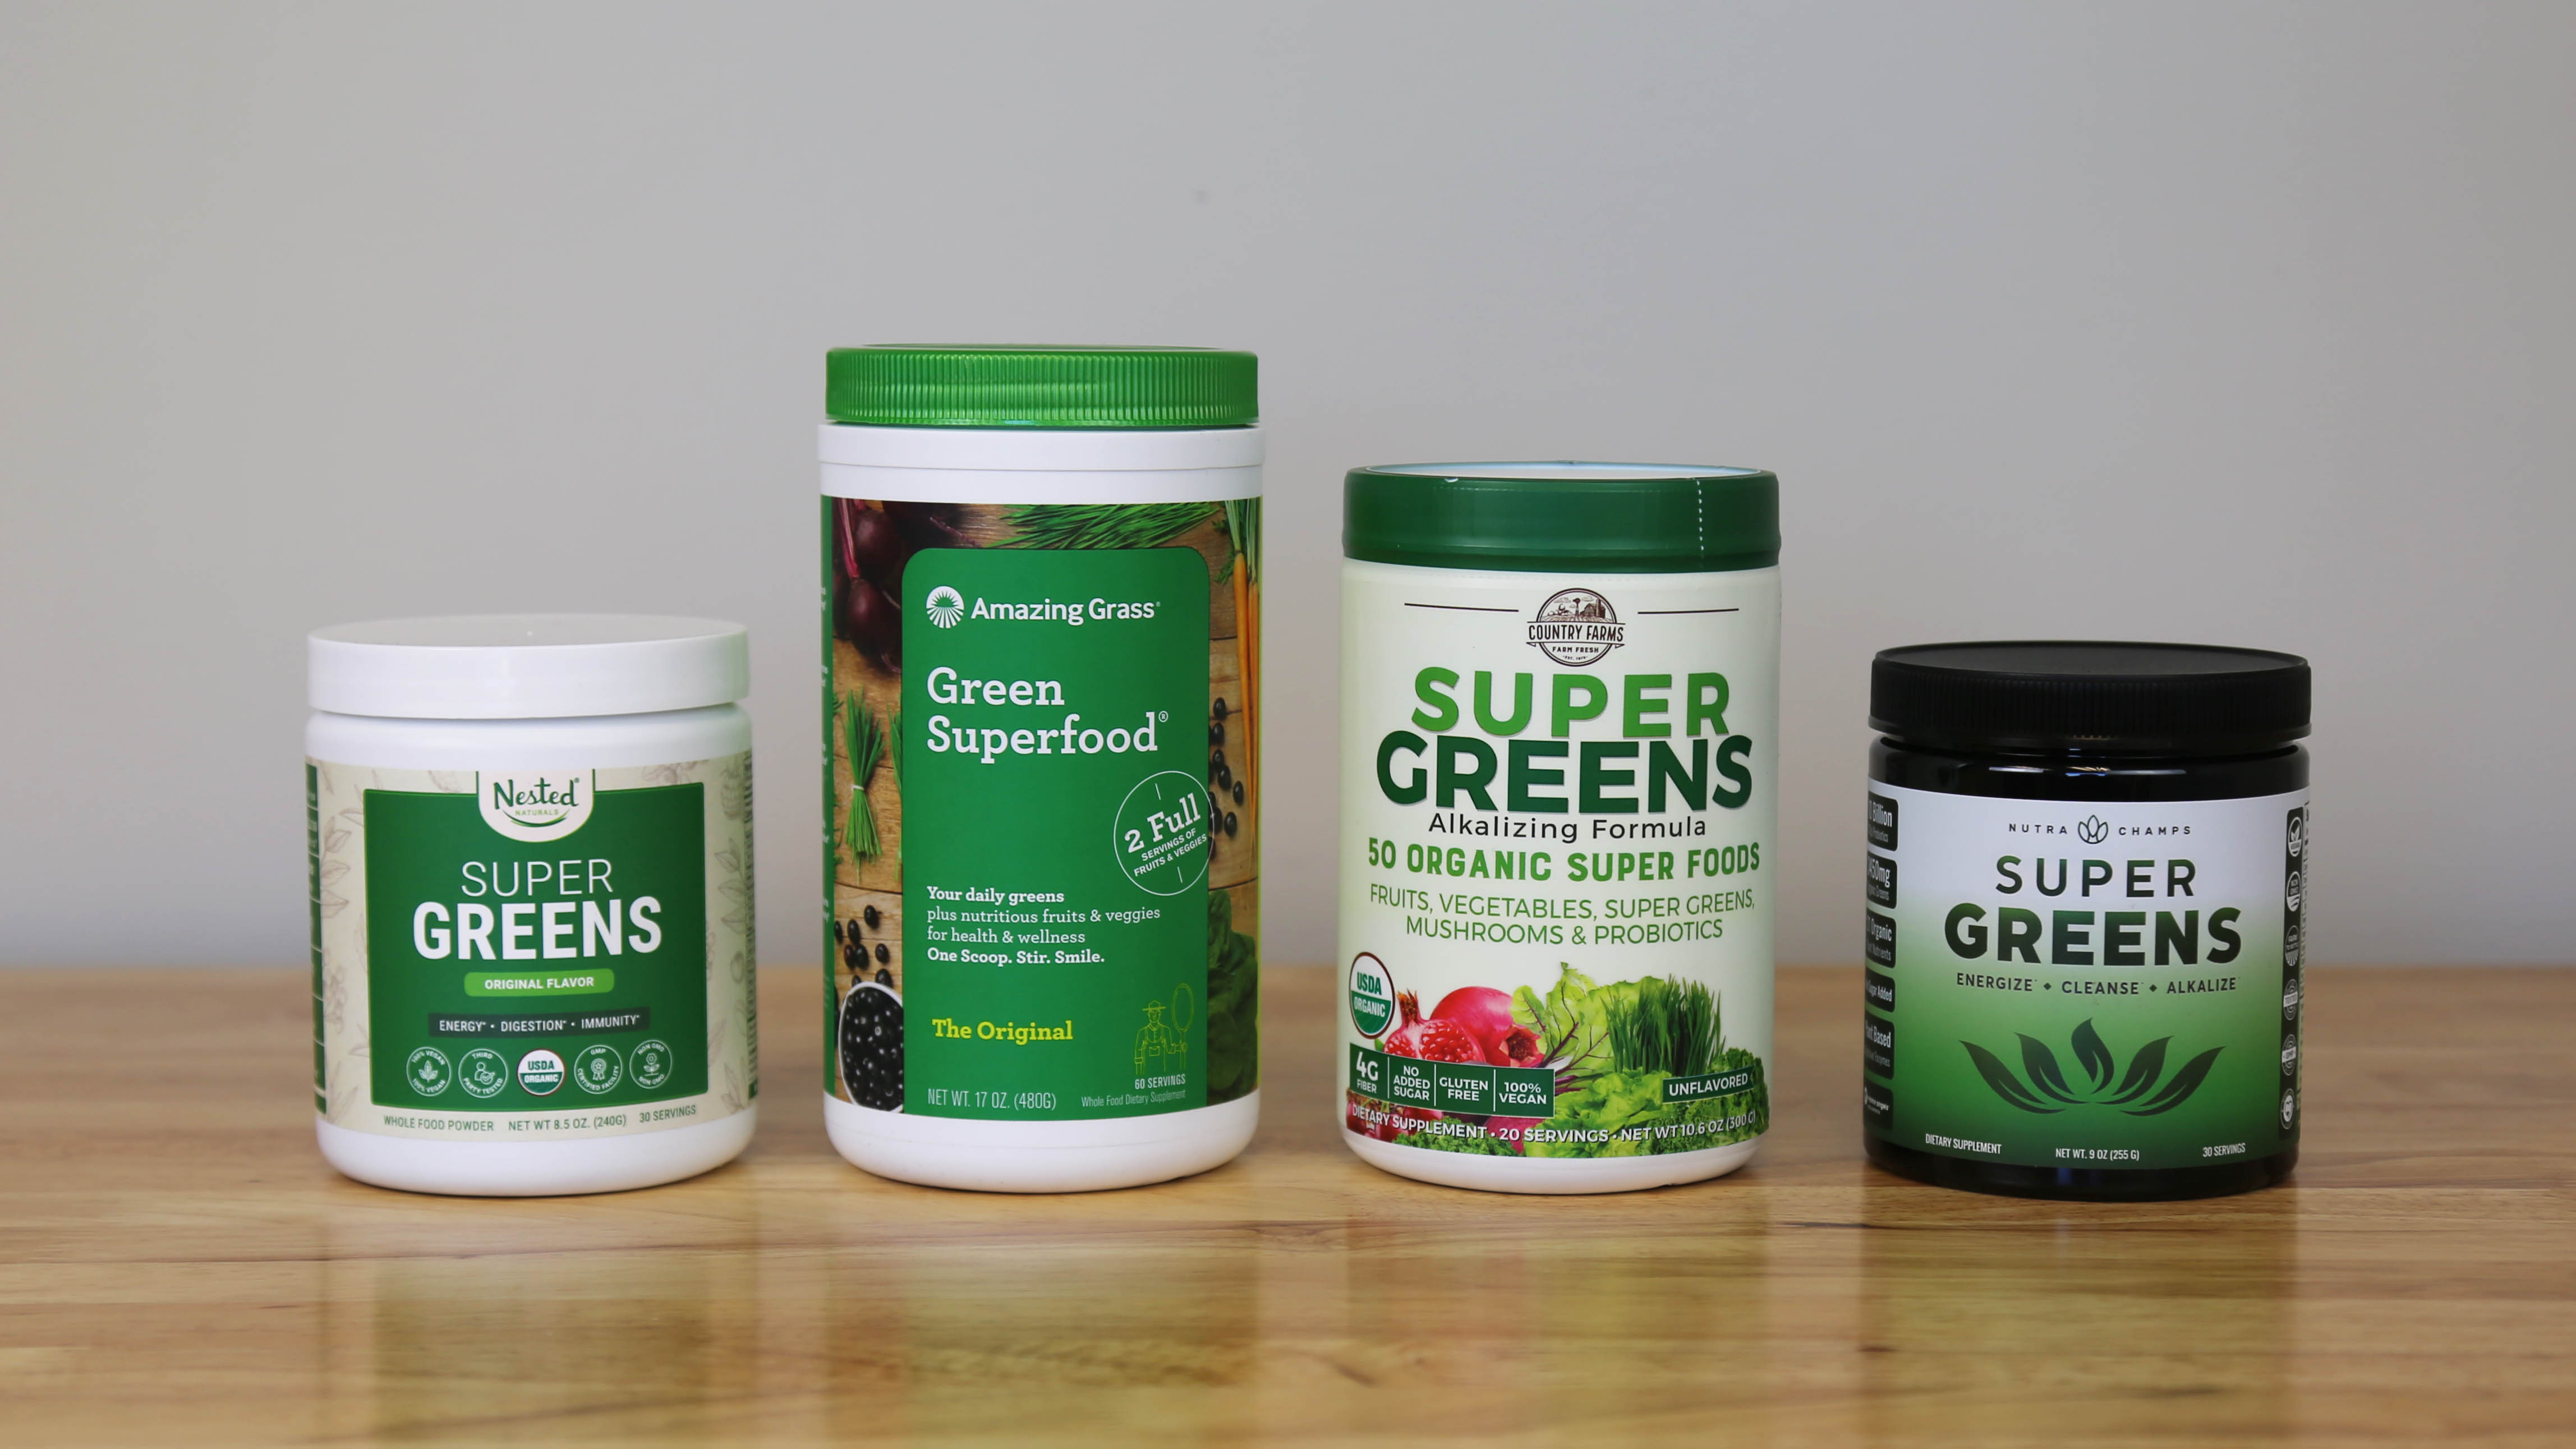 The Best Super Greens | February 2021